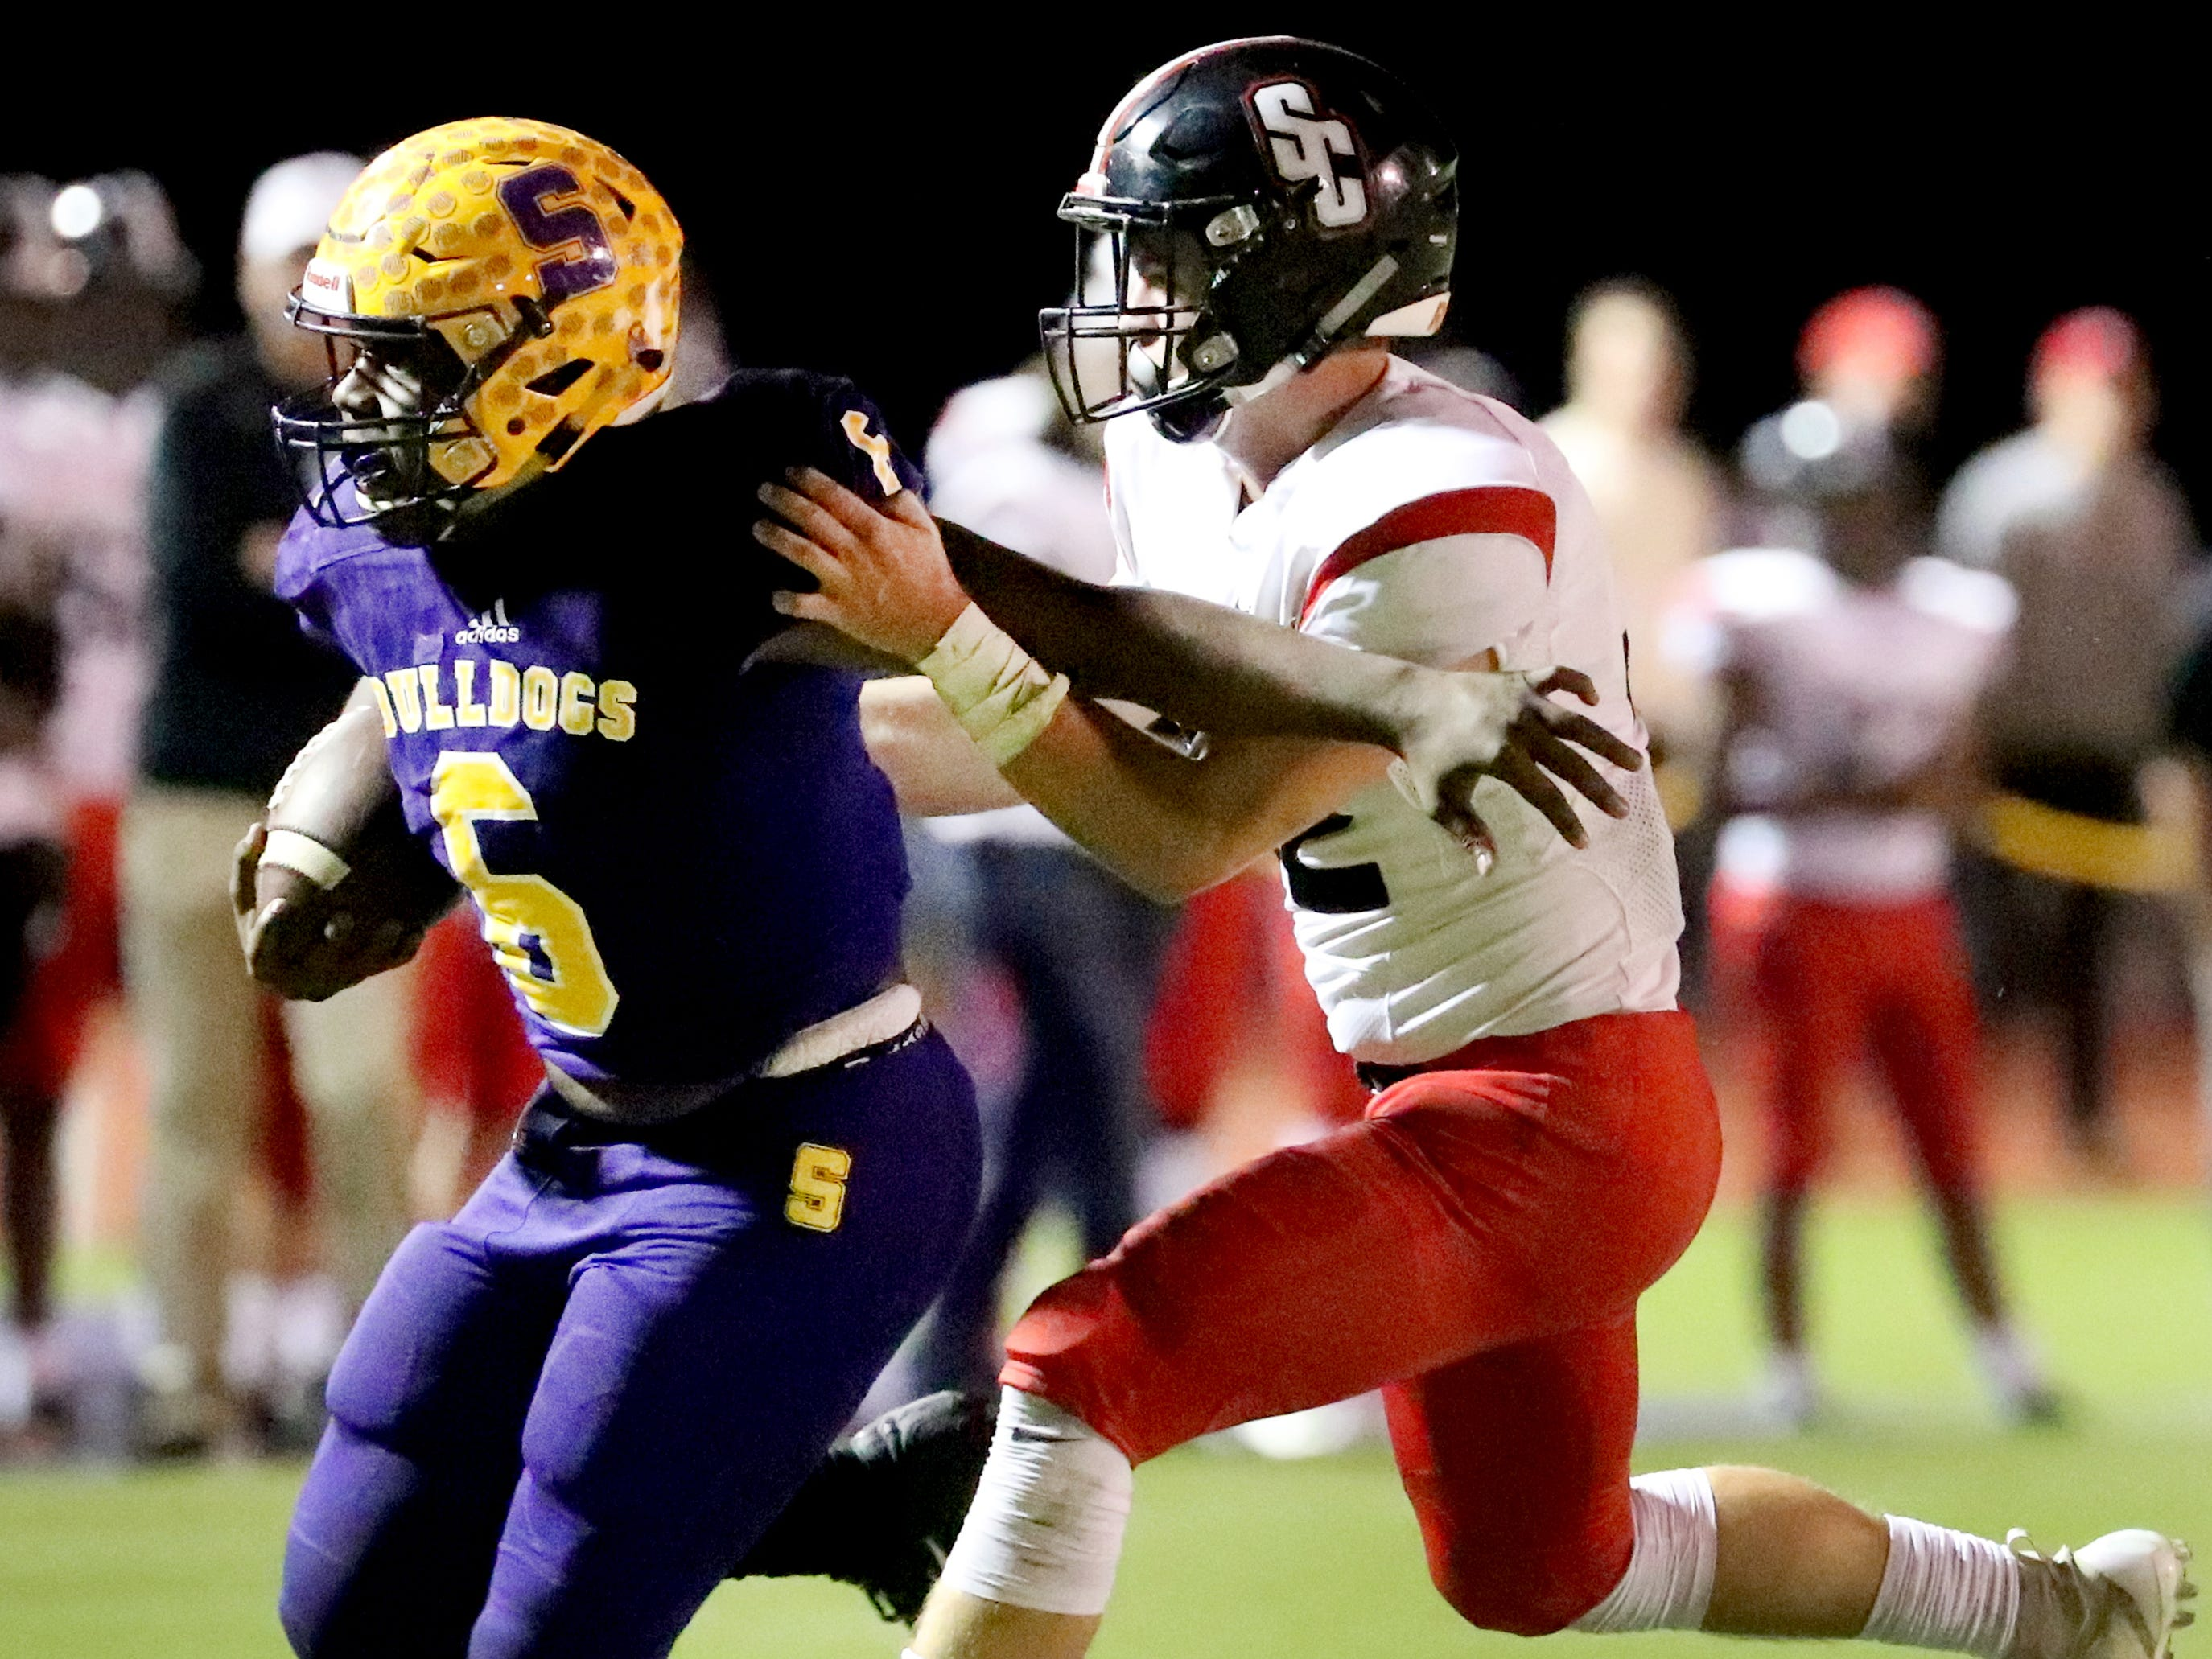 Smyrna's Mike Hartfield (6) runs the football as Stewarts Creek's Sam Slaughter (32) makes a tackle at Smyrna High School on Friday, Oct. 12, 2018.